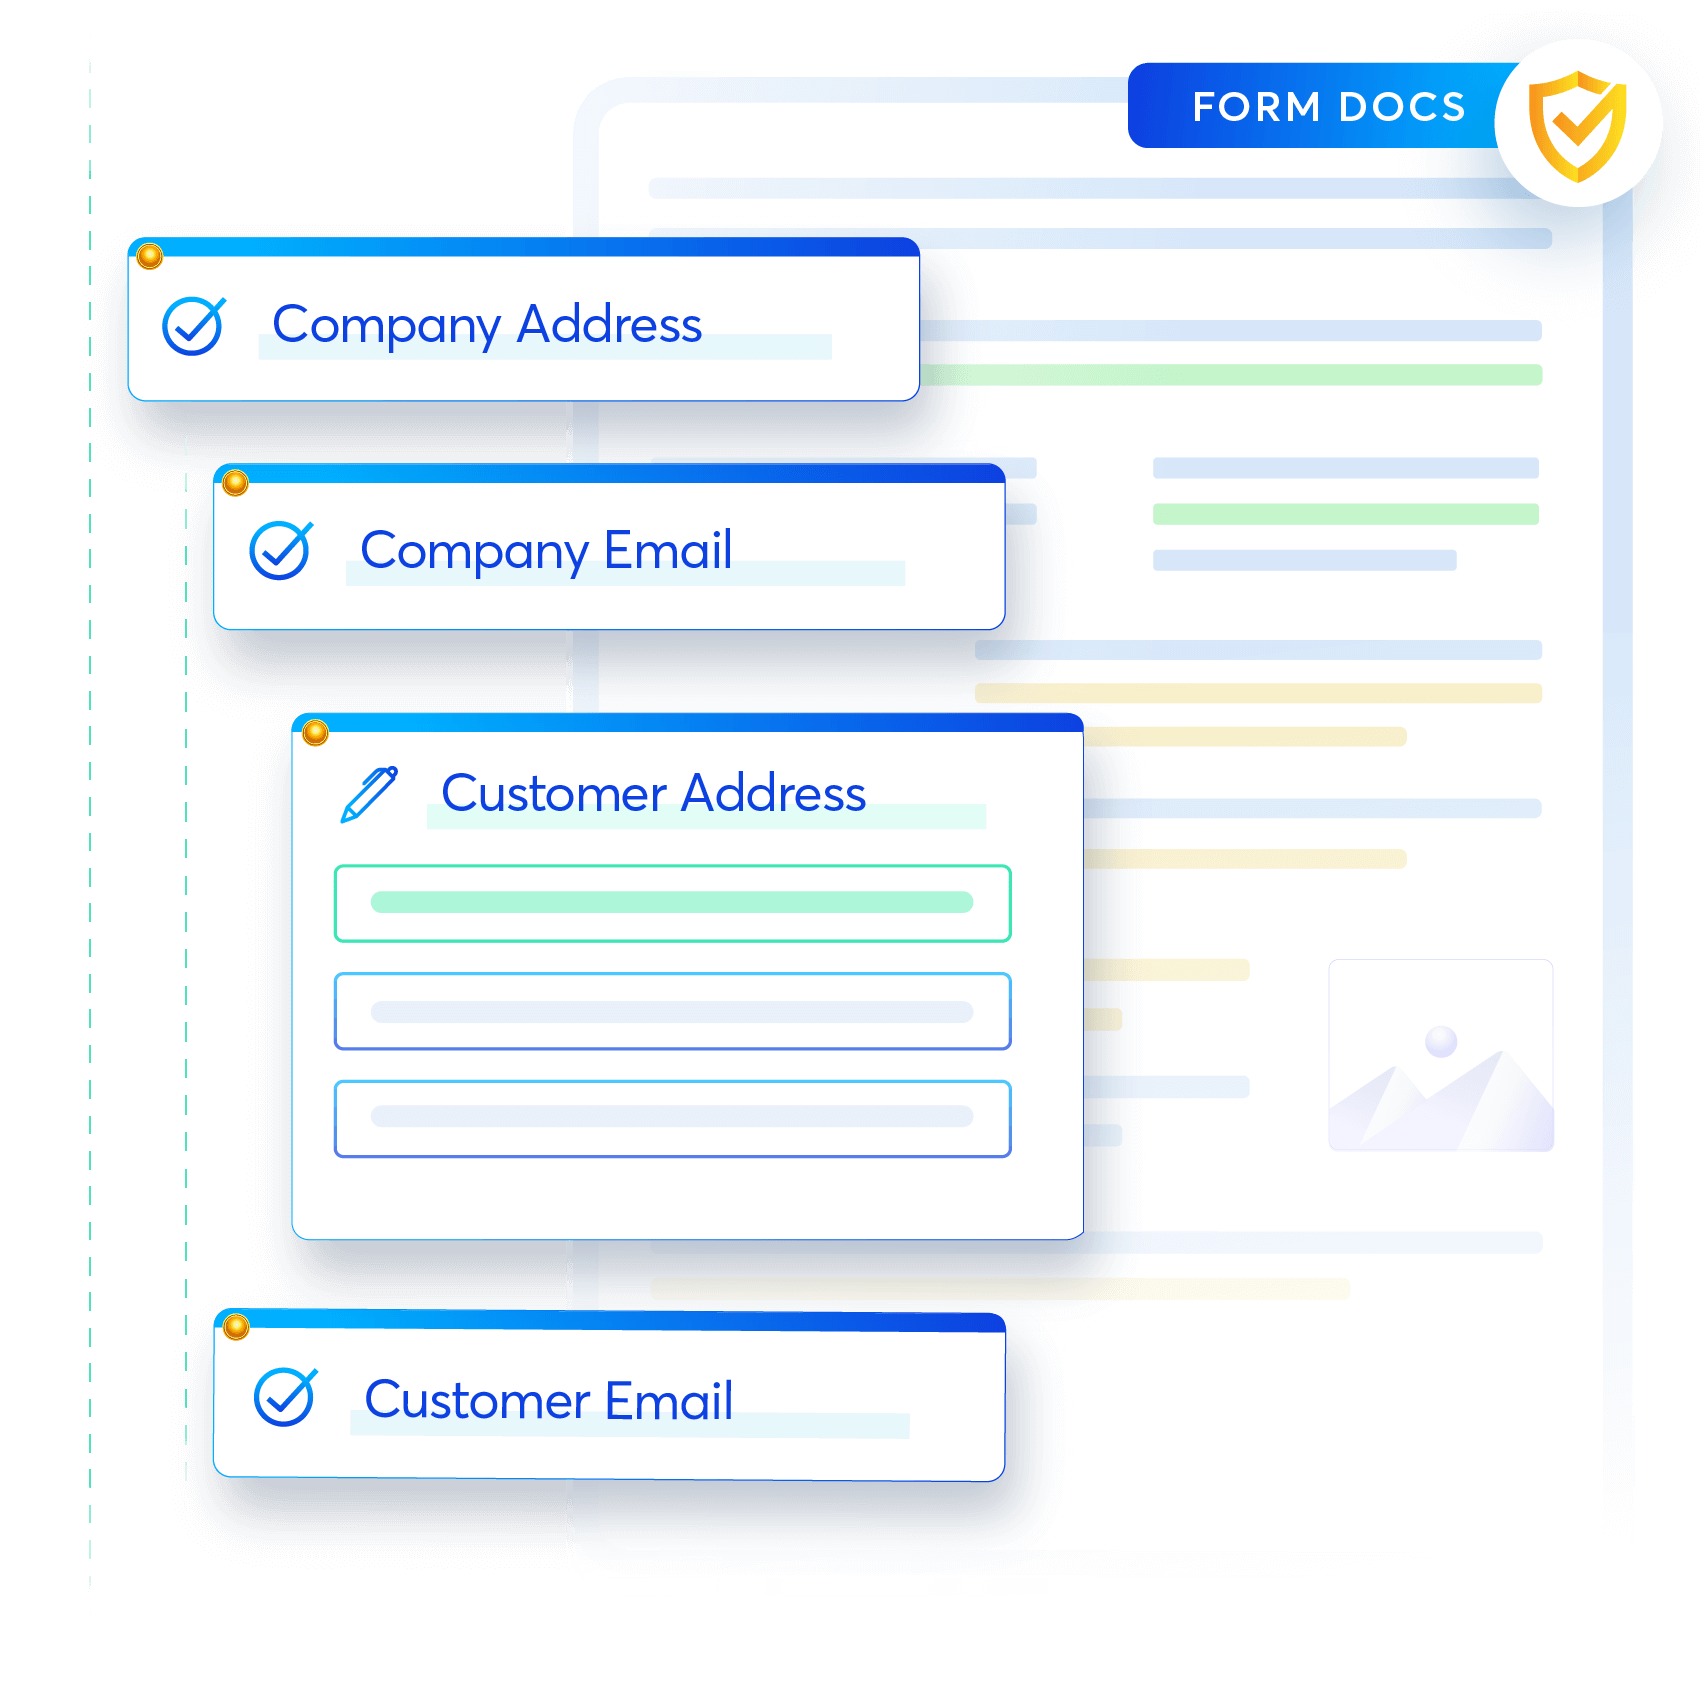 Collect specific information you need and create required documents with right inputs to reduce unnecessary back and forth email exchange for updates and changes.